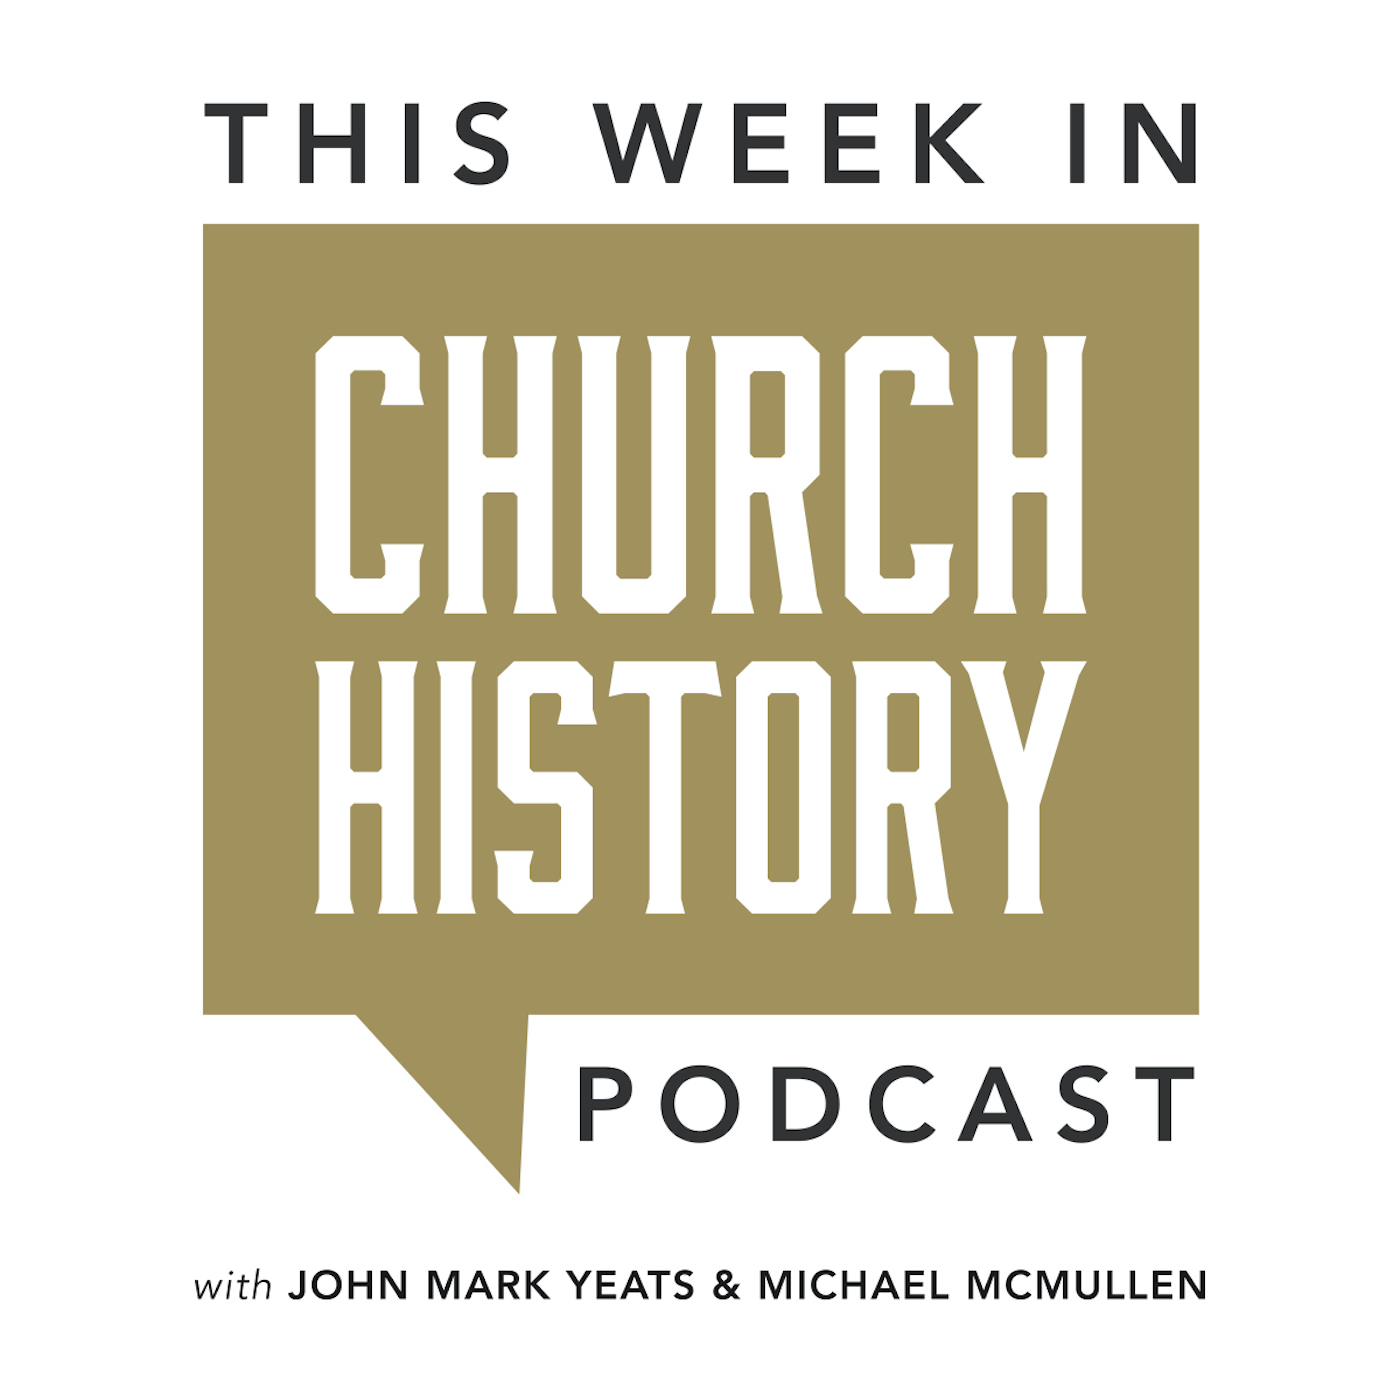 Midwestern Seminary Introduces 'This Week in Church History' Podcast